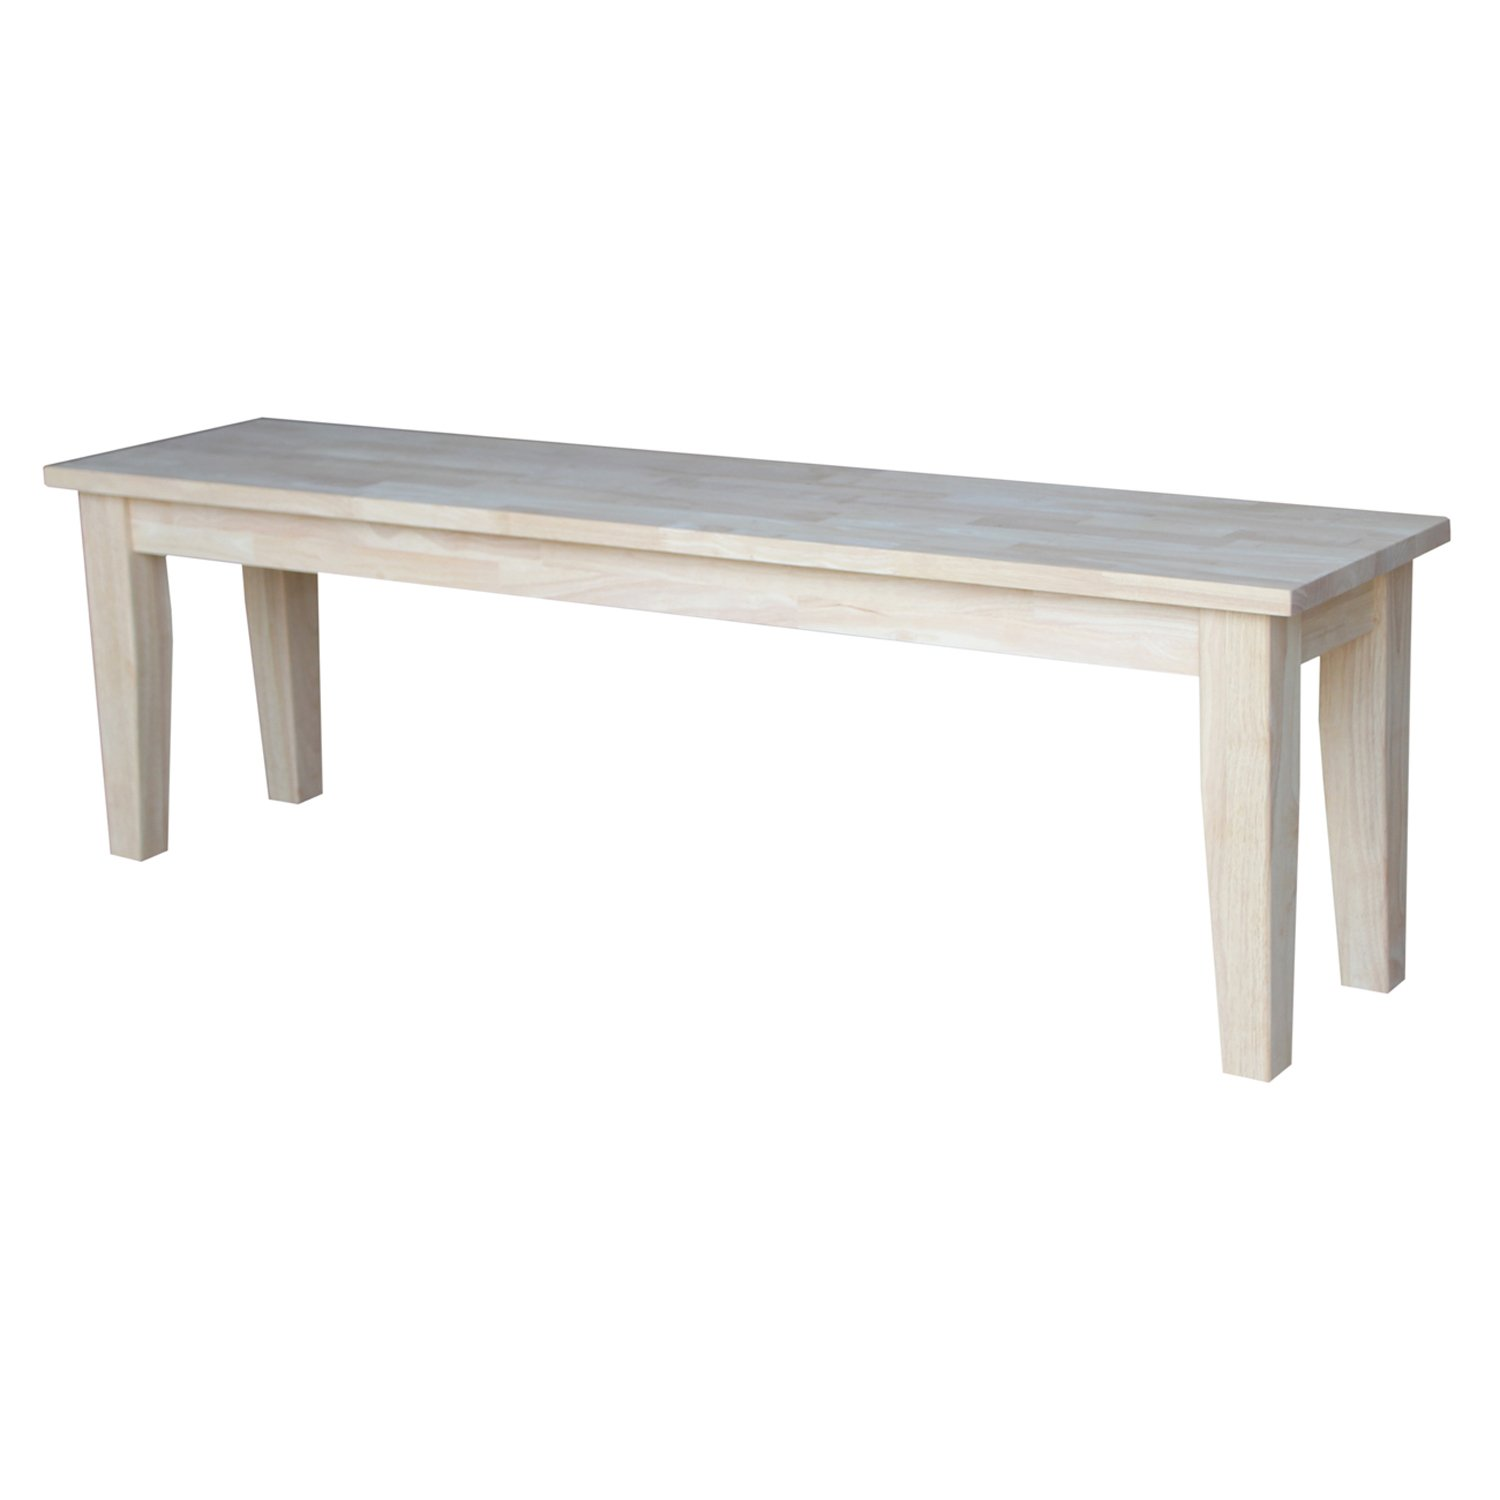 International Concepts Shaker Style Bench, Unfinished by International Concepts